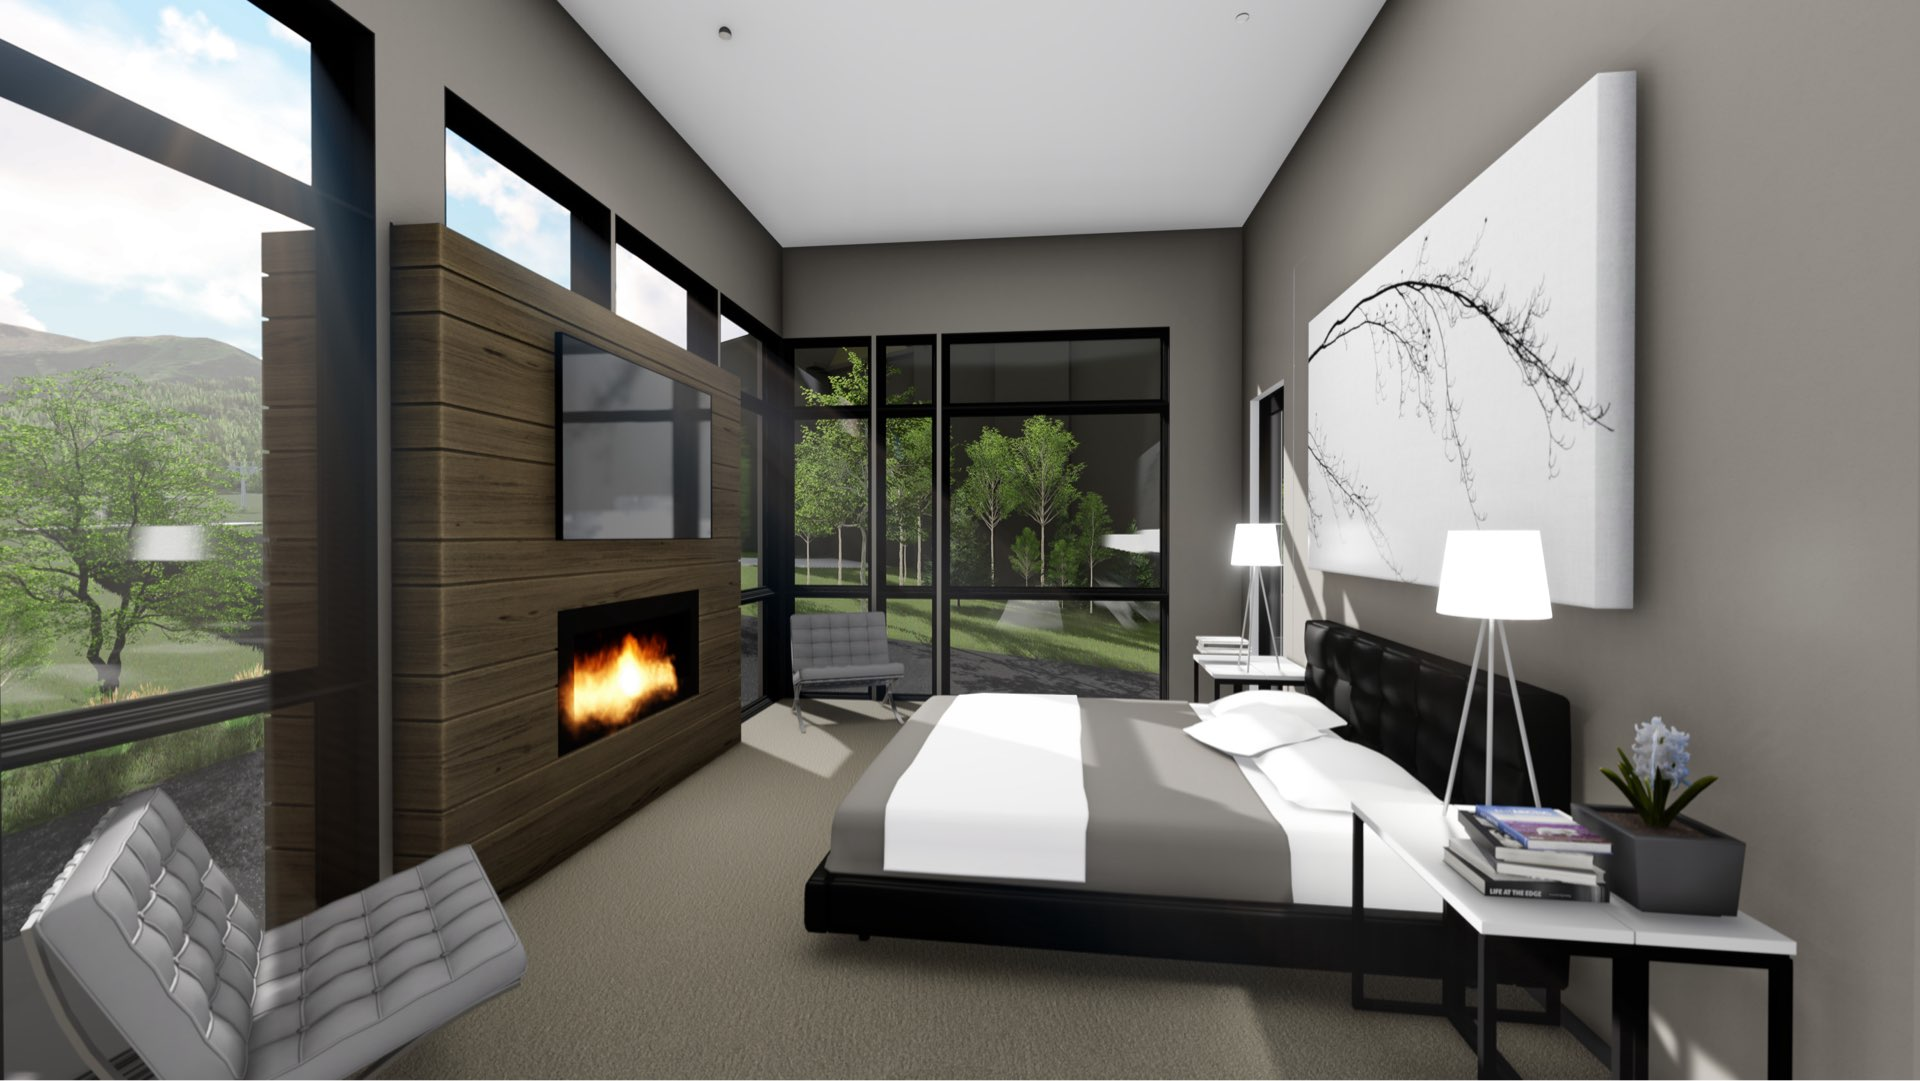 Bedroom rendering of Viridian Townhomes at Canyons Village in Park City, Utah, architectural design by Elliott Workgroup